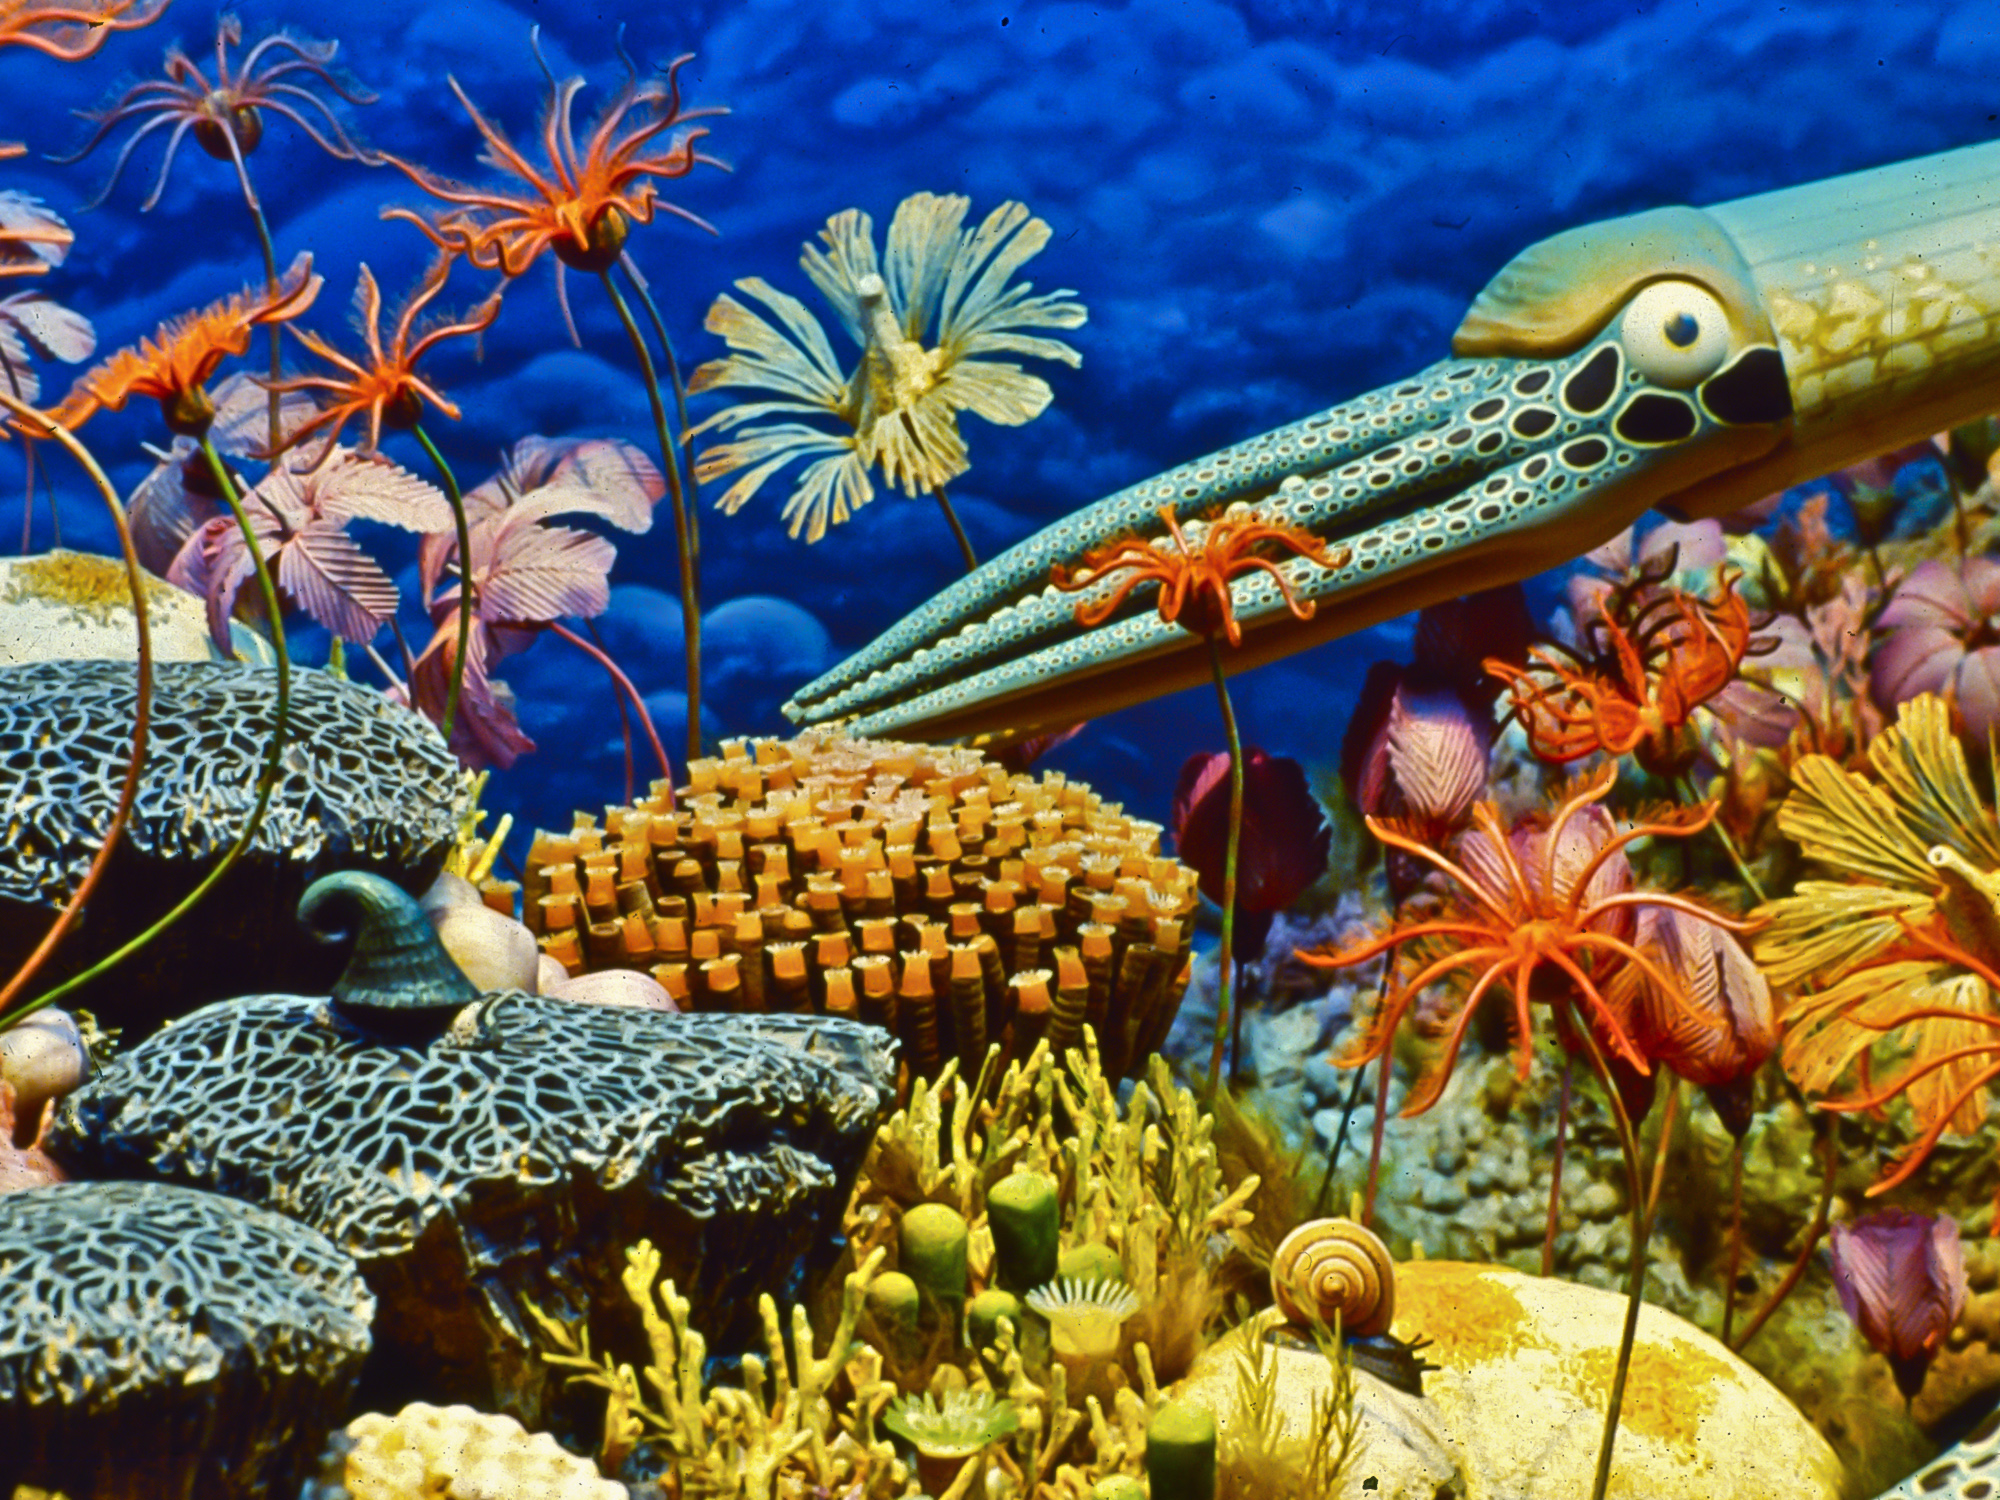 Closeup of cephalopod, crinoids, and other organisms in Milwaukee Public Museum's Silurian reef diorama